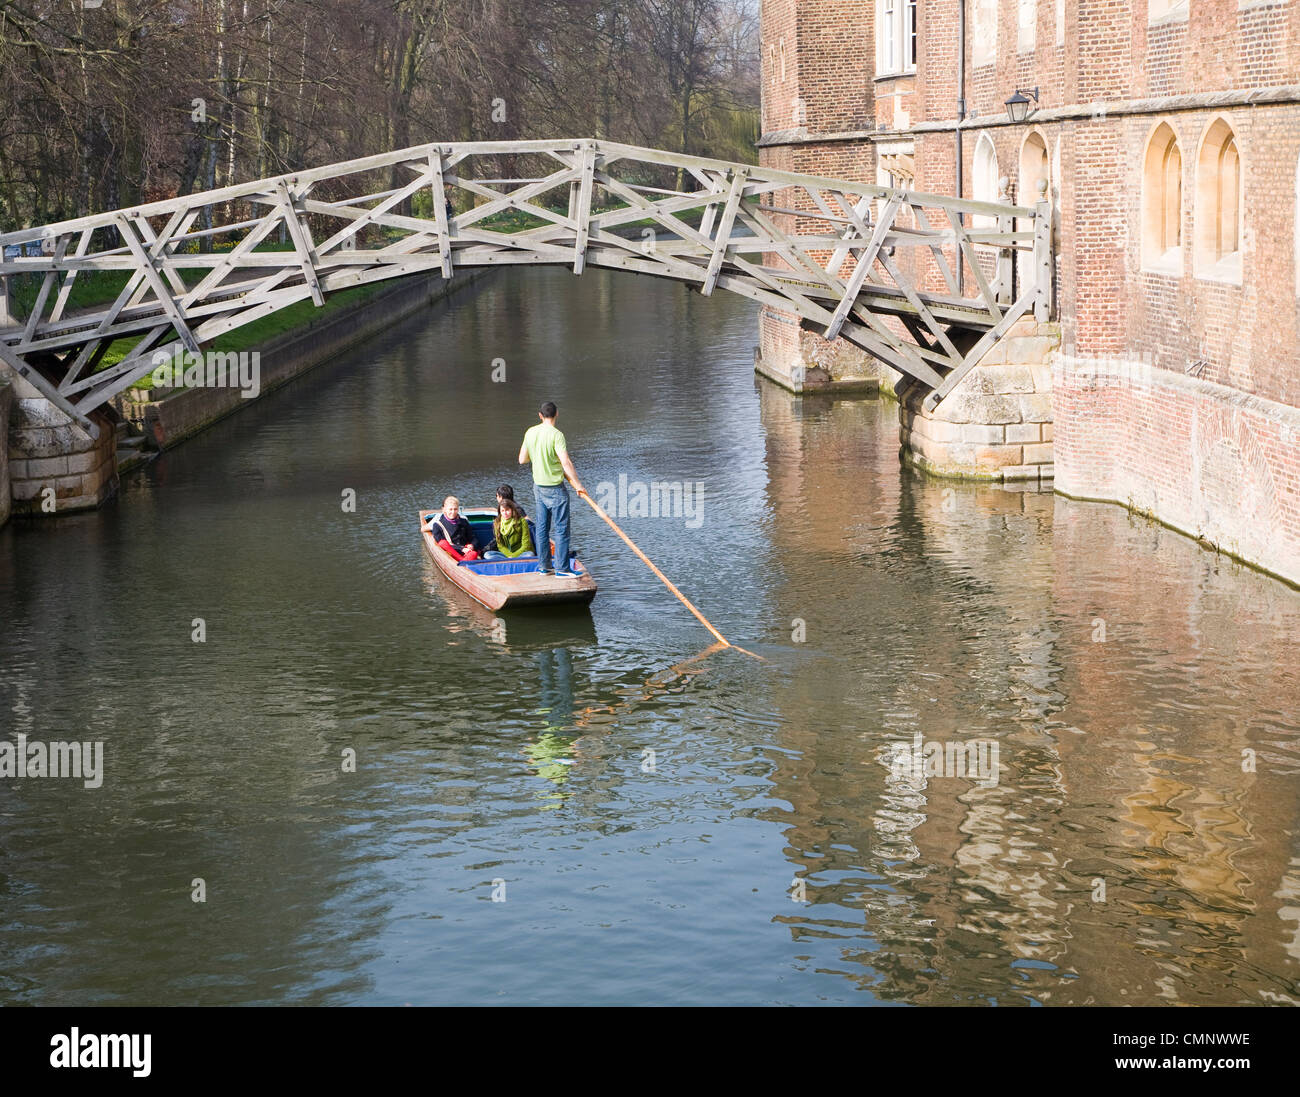 People punting on the River Cam by the Mathematical Bridge, Cambridge, England Stock Photo